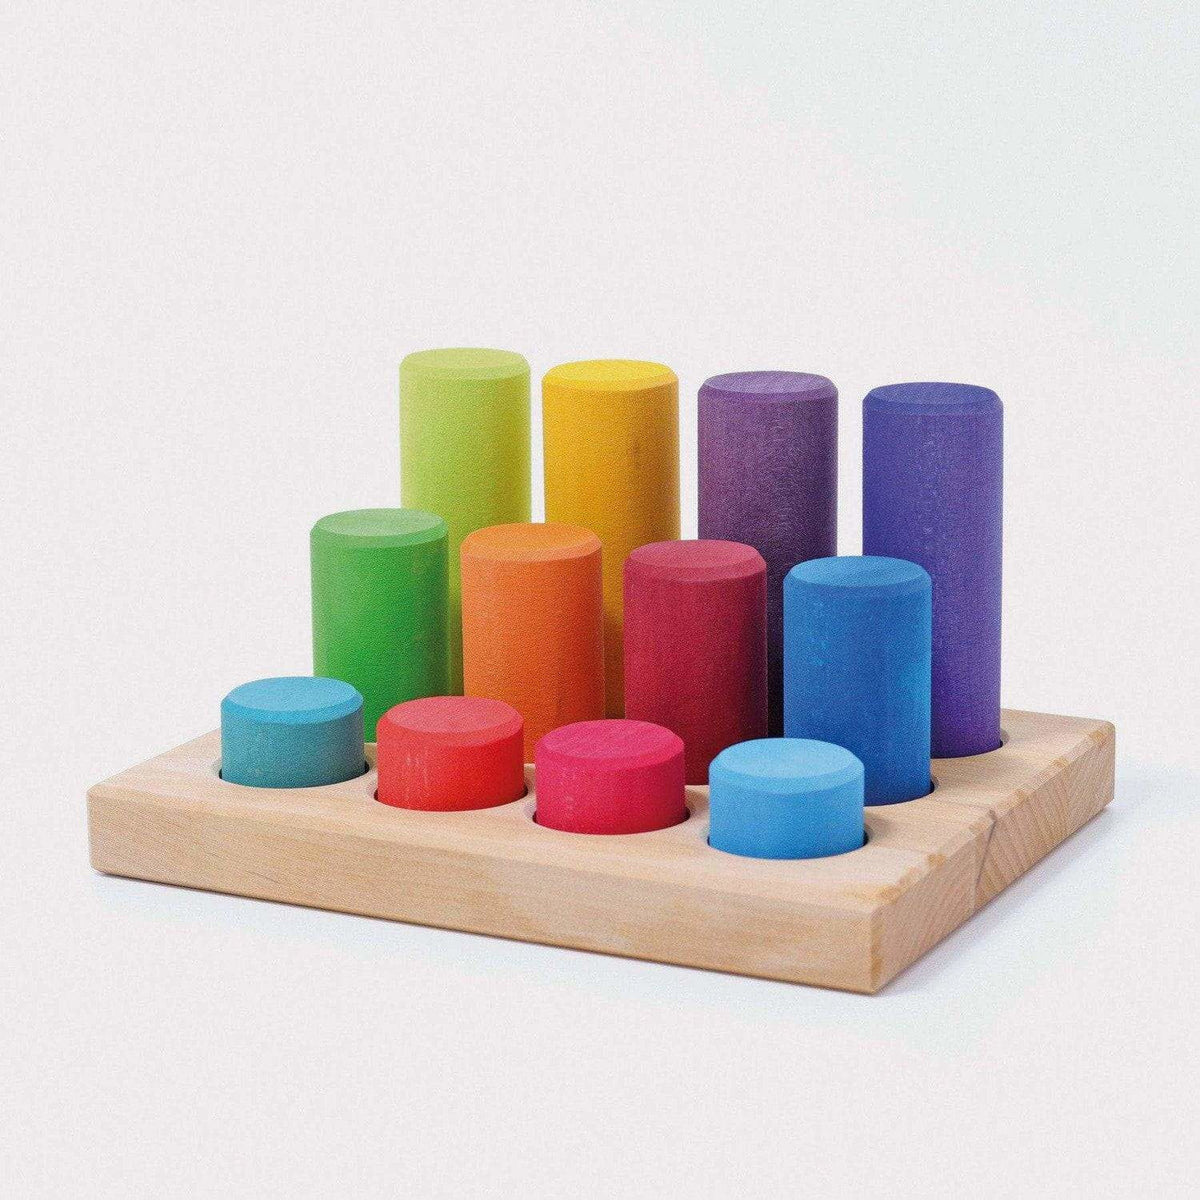 Grimm's Stacking Game Small Rollers Rainbow